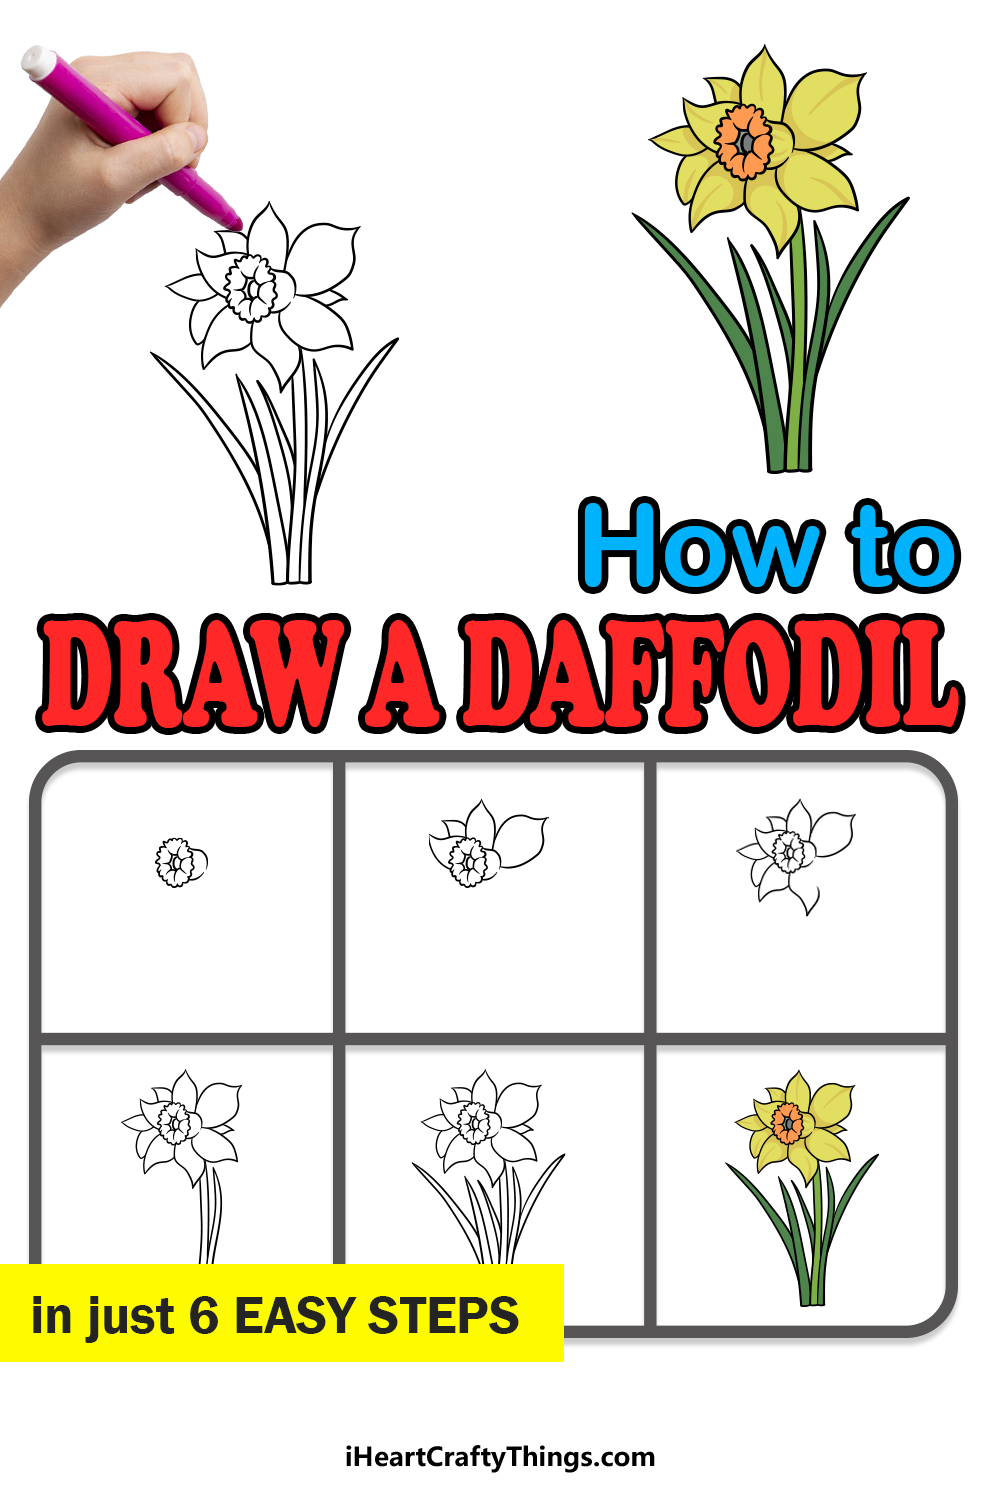 how to draw a daffodil in 6 easy steps